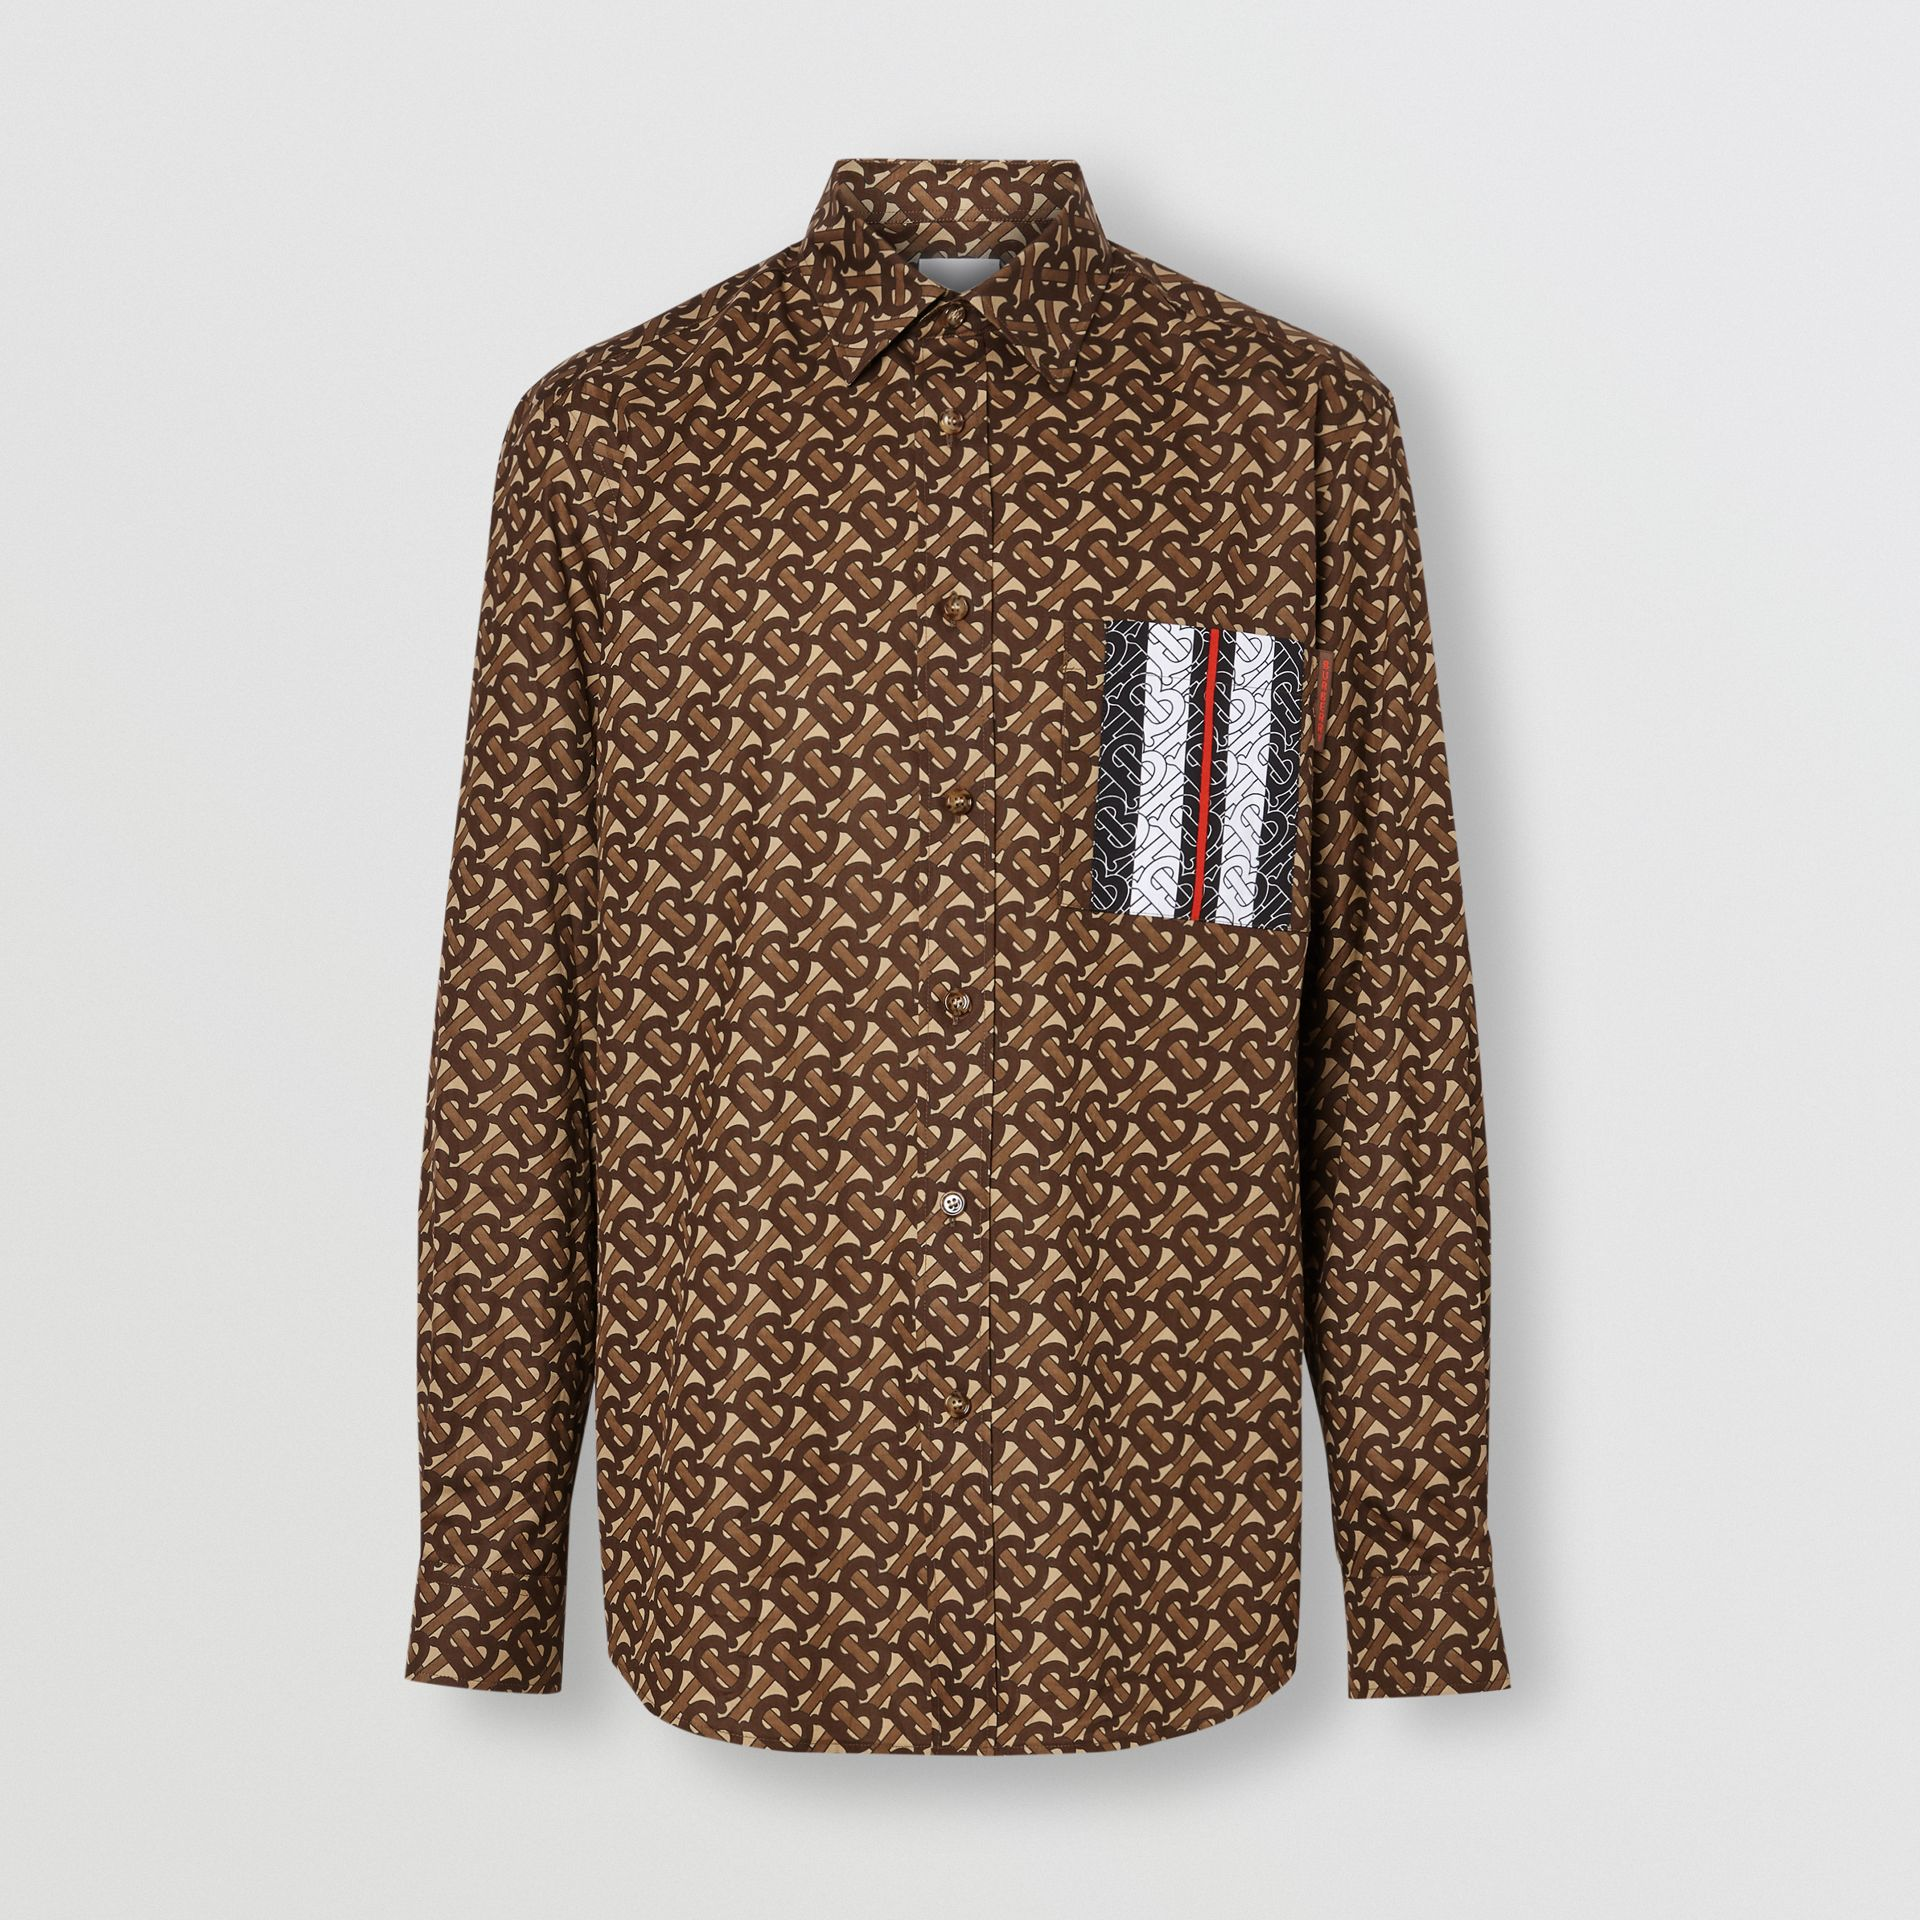 Monogram Stripe Print Cotton Shirt in Bridle Brown - Men | Burberry Australia - gallery image 3